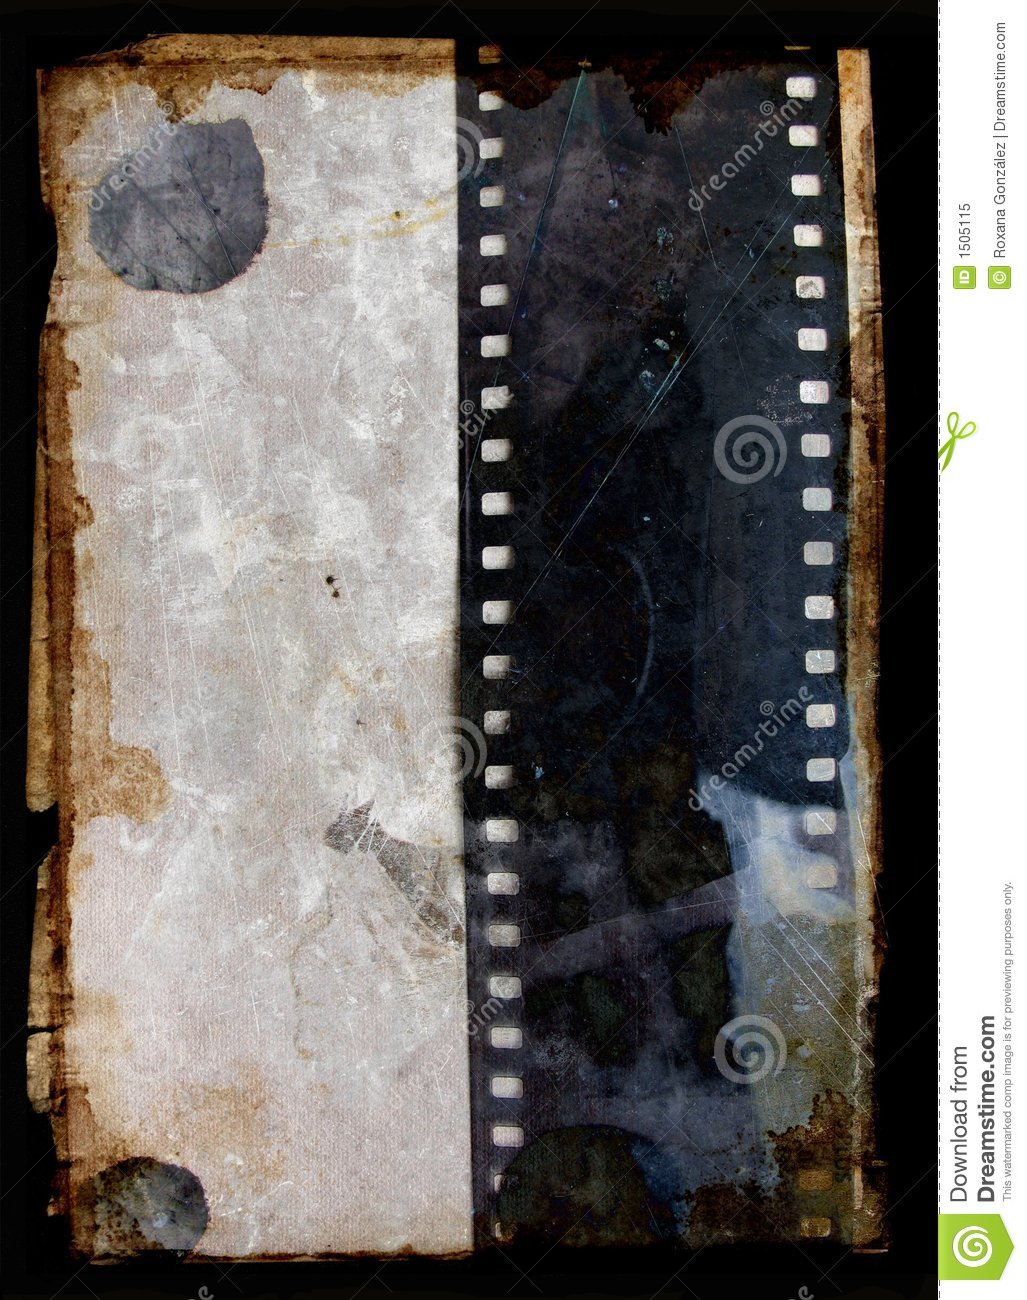 Grunge background with film strip